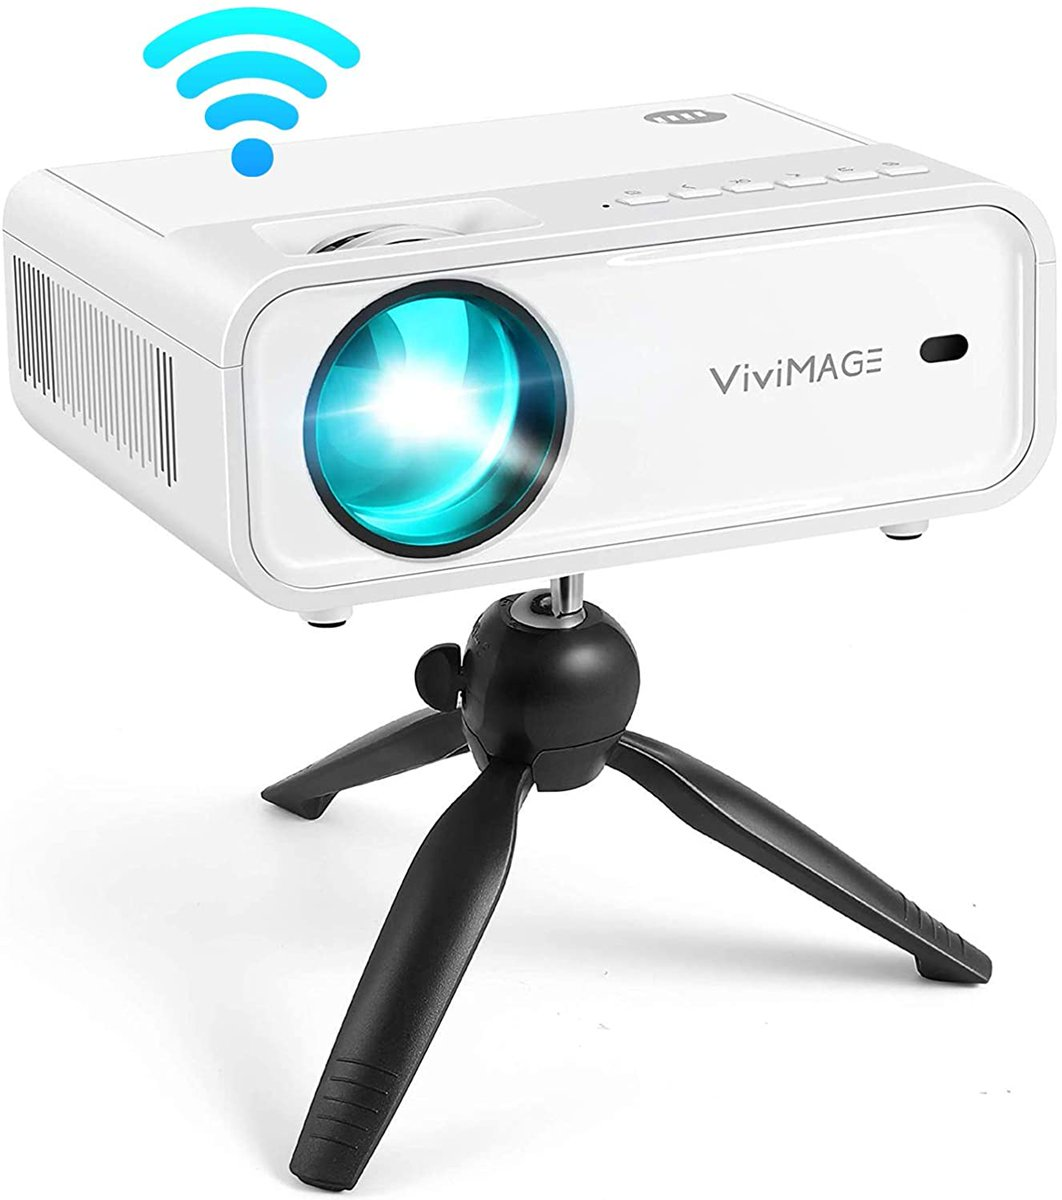 Grab a mini projector for $30 off at checkout